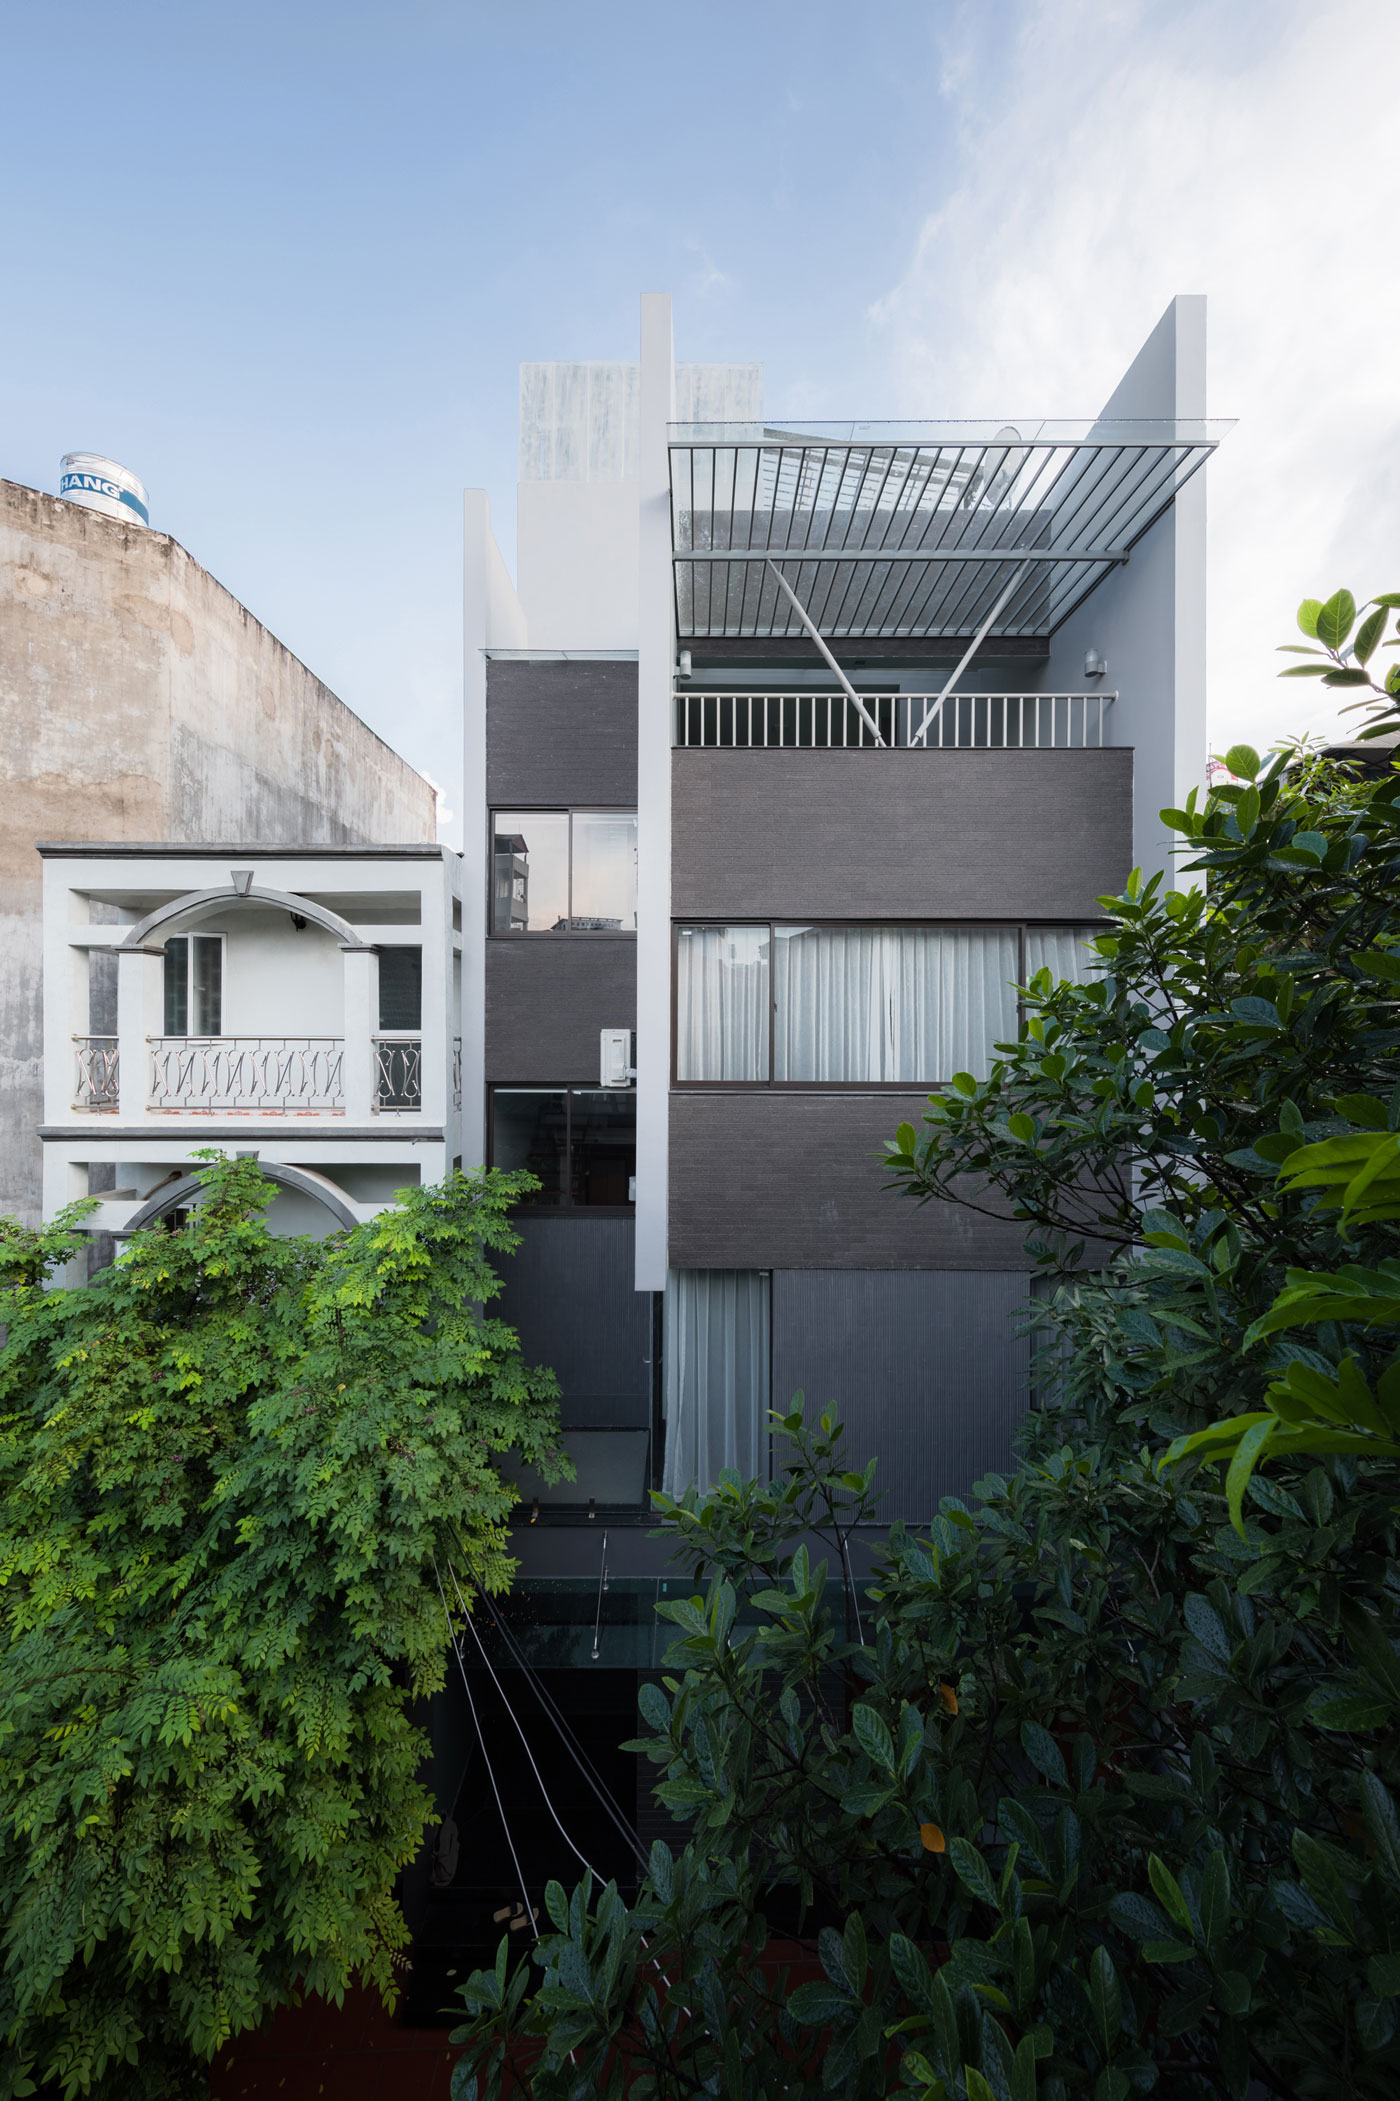 Residence in Hanoi, Vietnam by Le Studio Architects